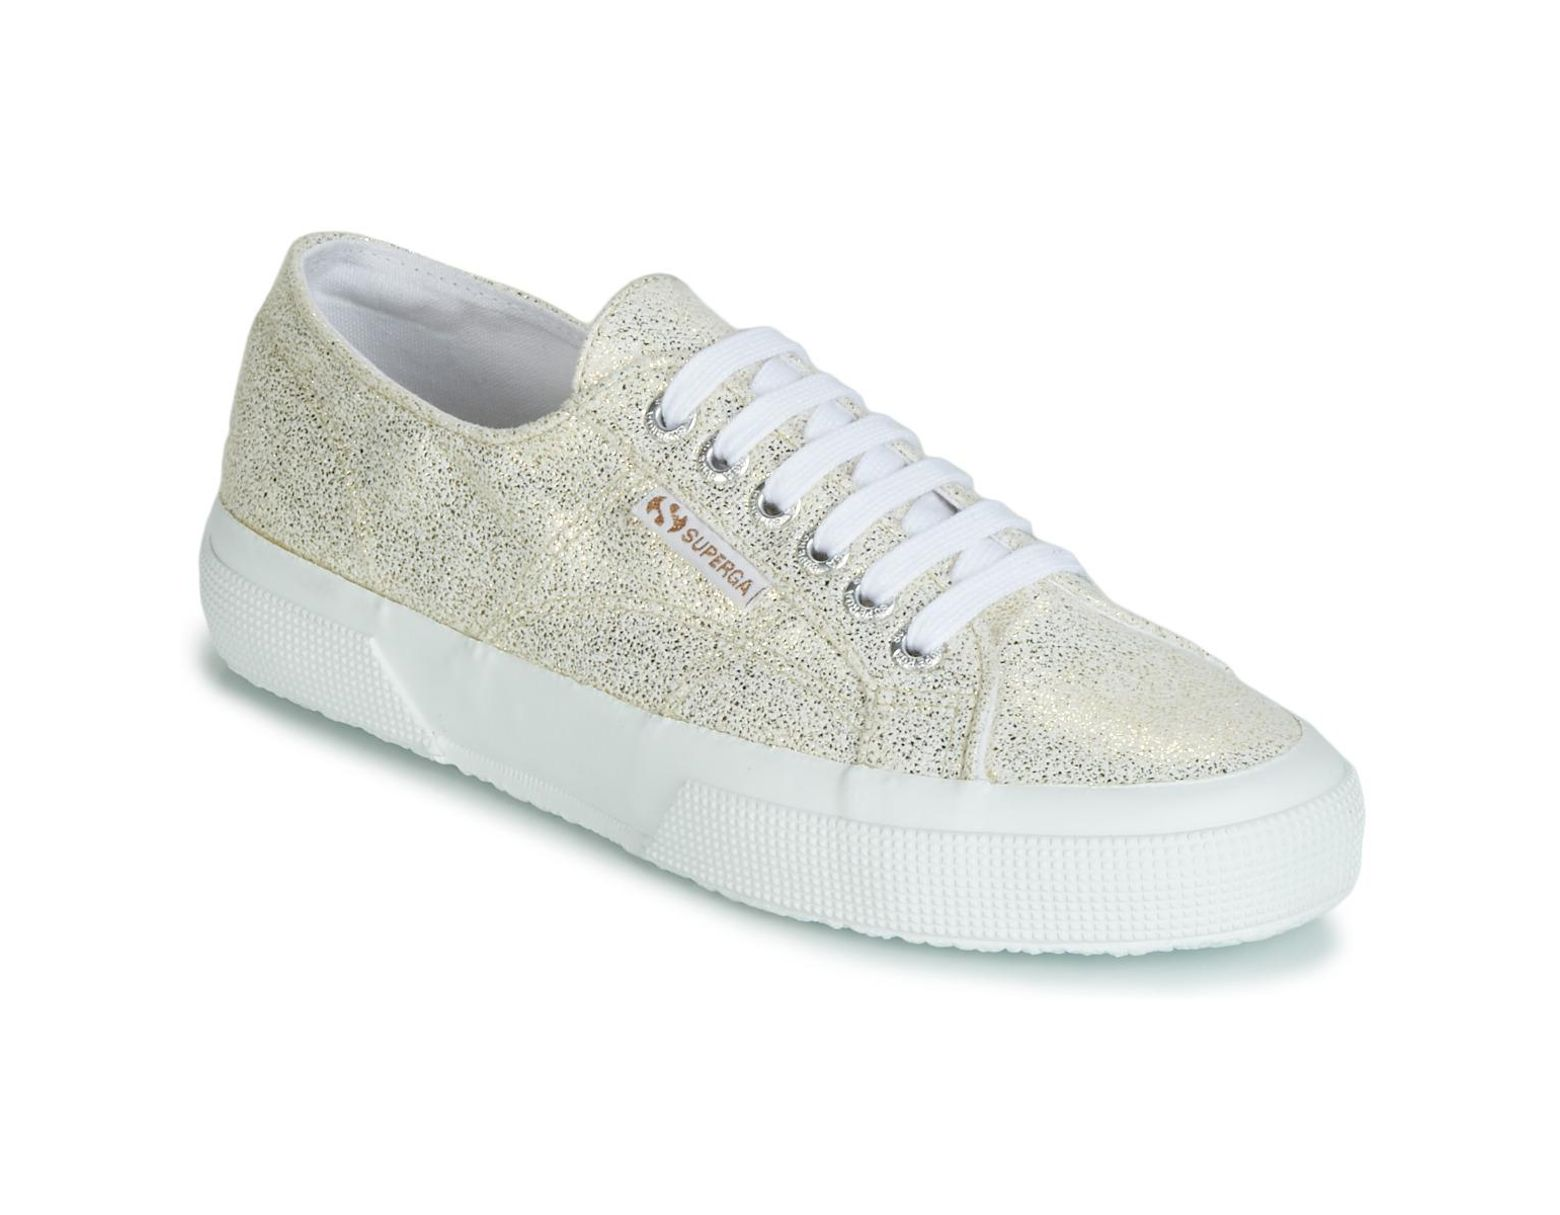 0fb23a3db0894 Superga 2750 Jersey Frost Lame W Shoes (trainers) in Metallic - Lyst